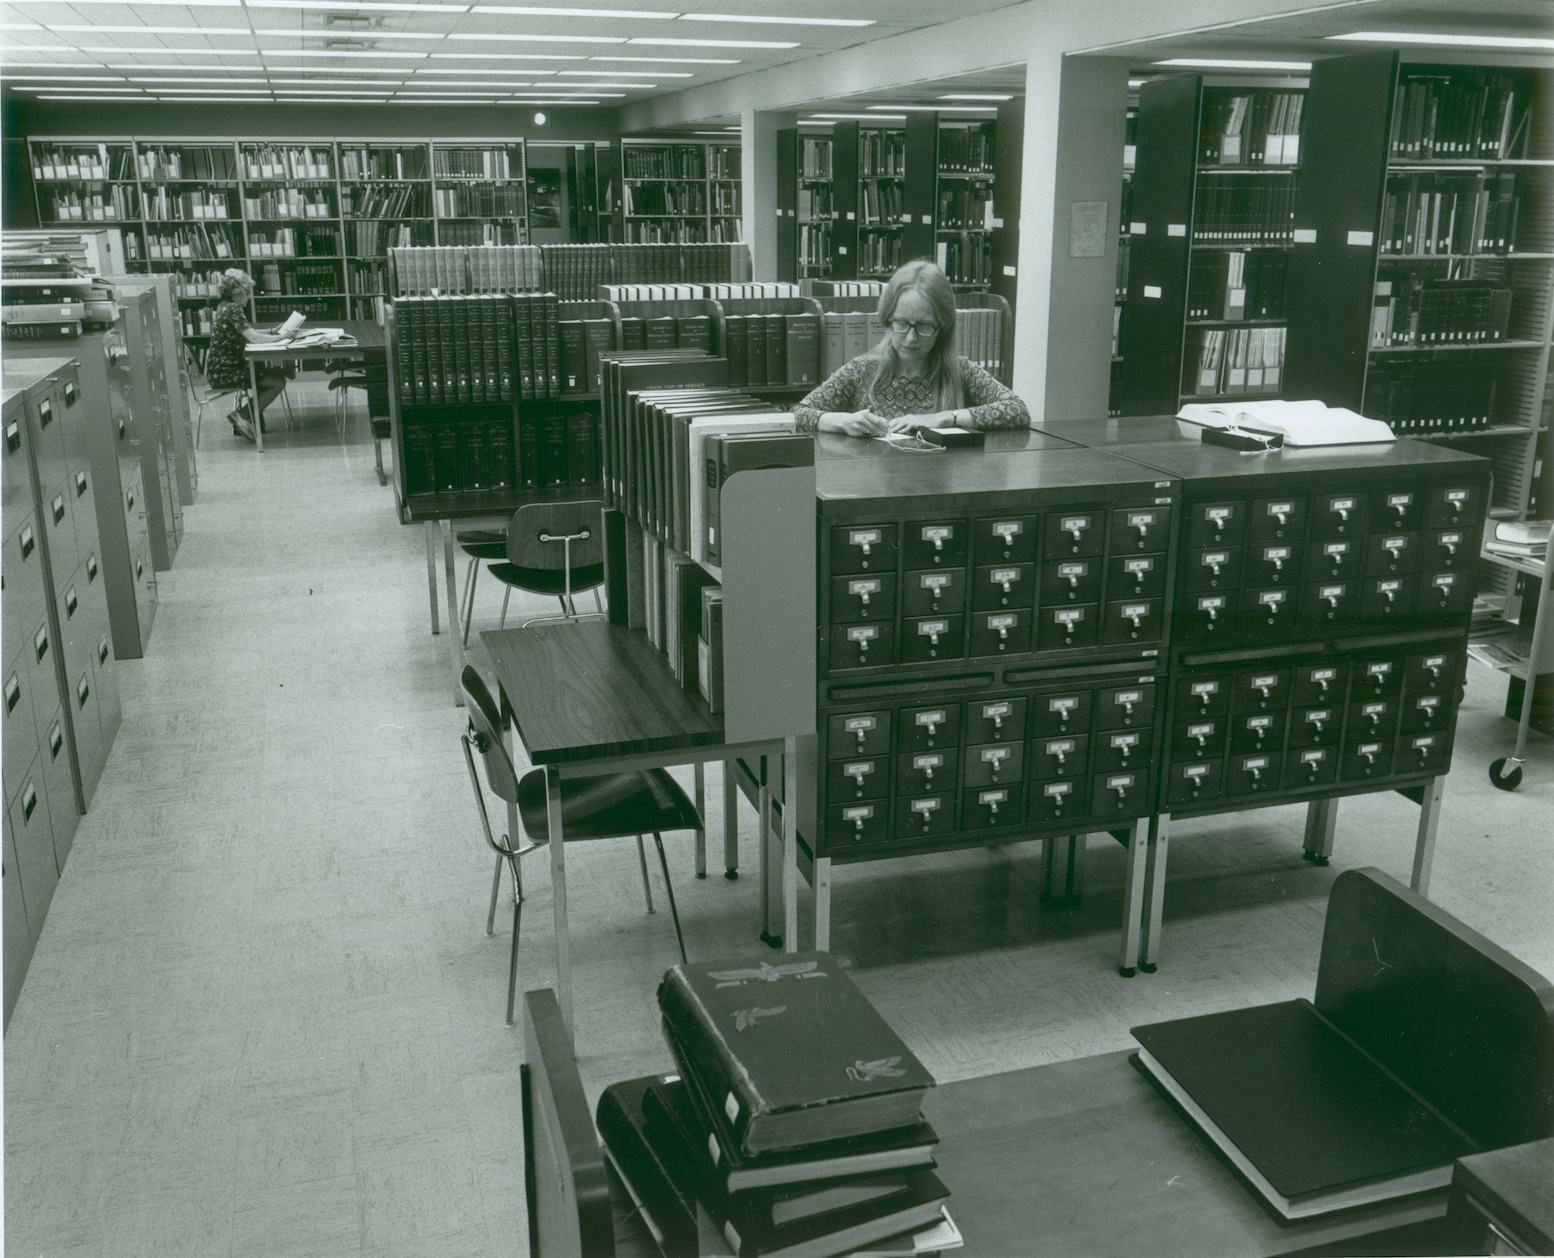 From LACMA's archives: LACMA's library, c. 1965, photo © Museum Associates/LACMA